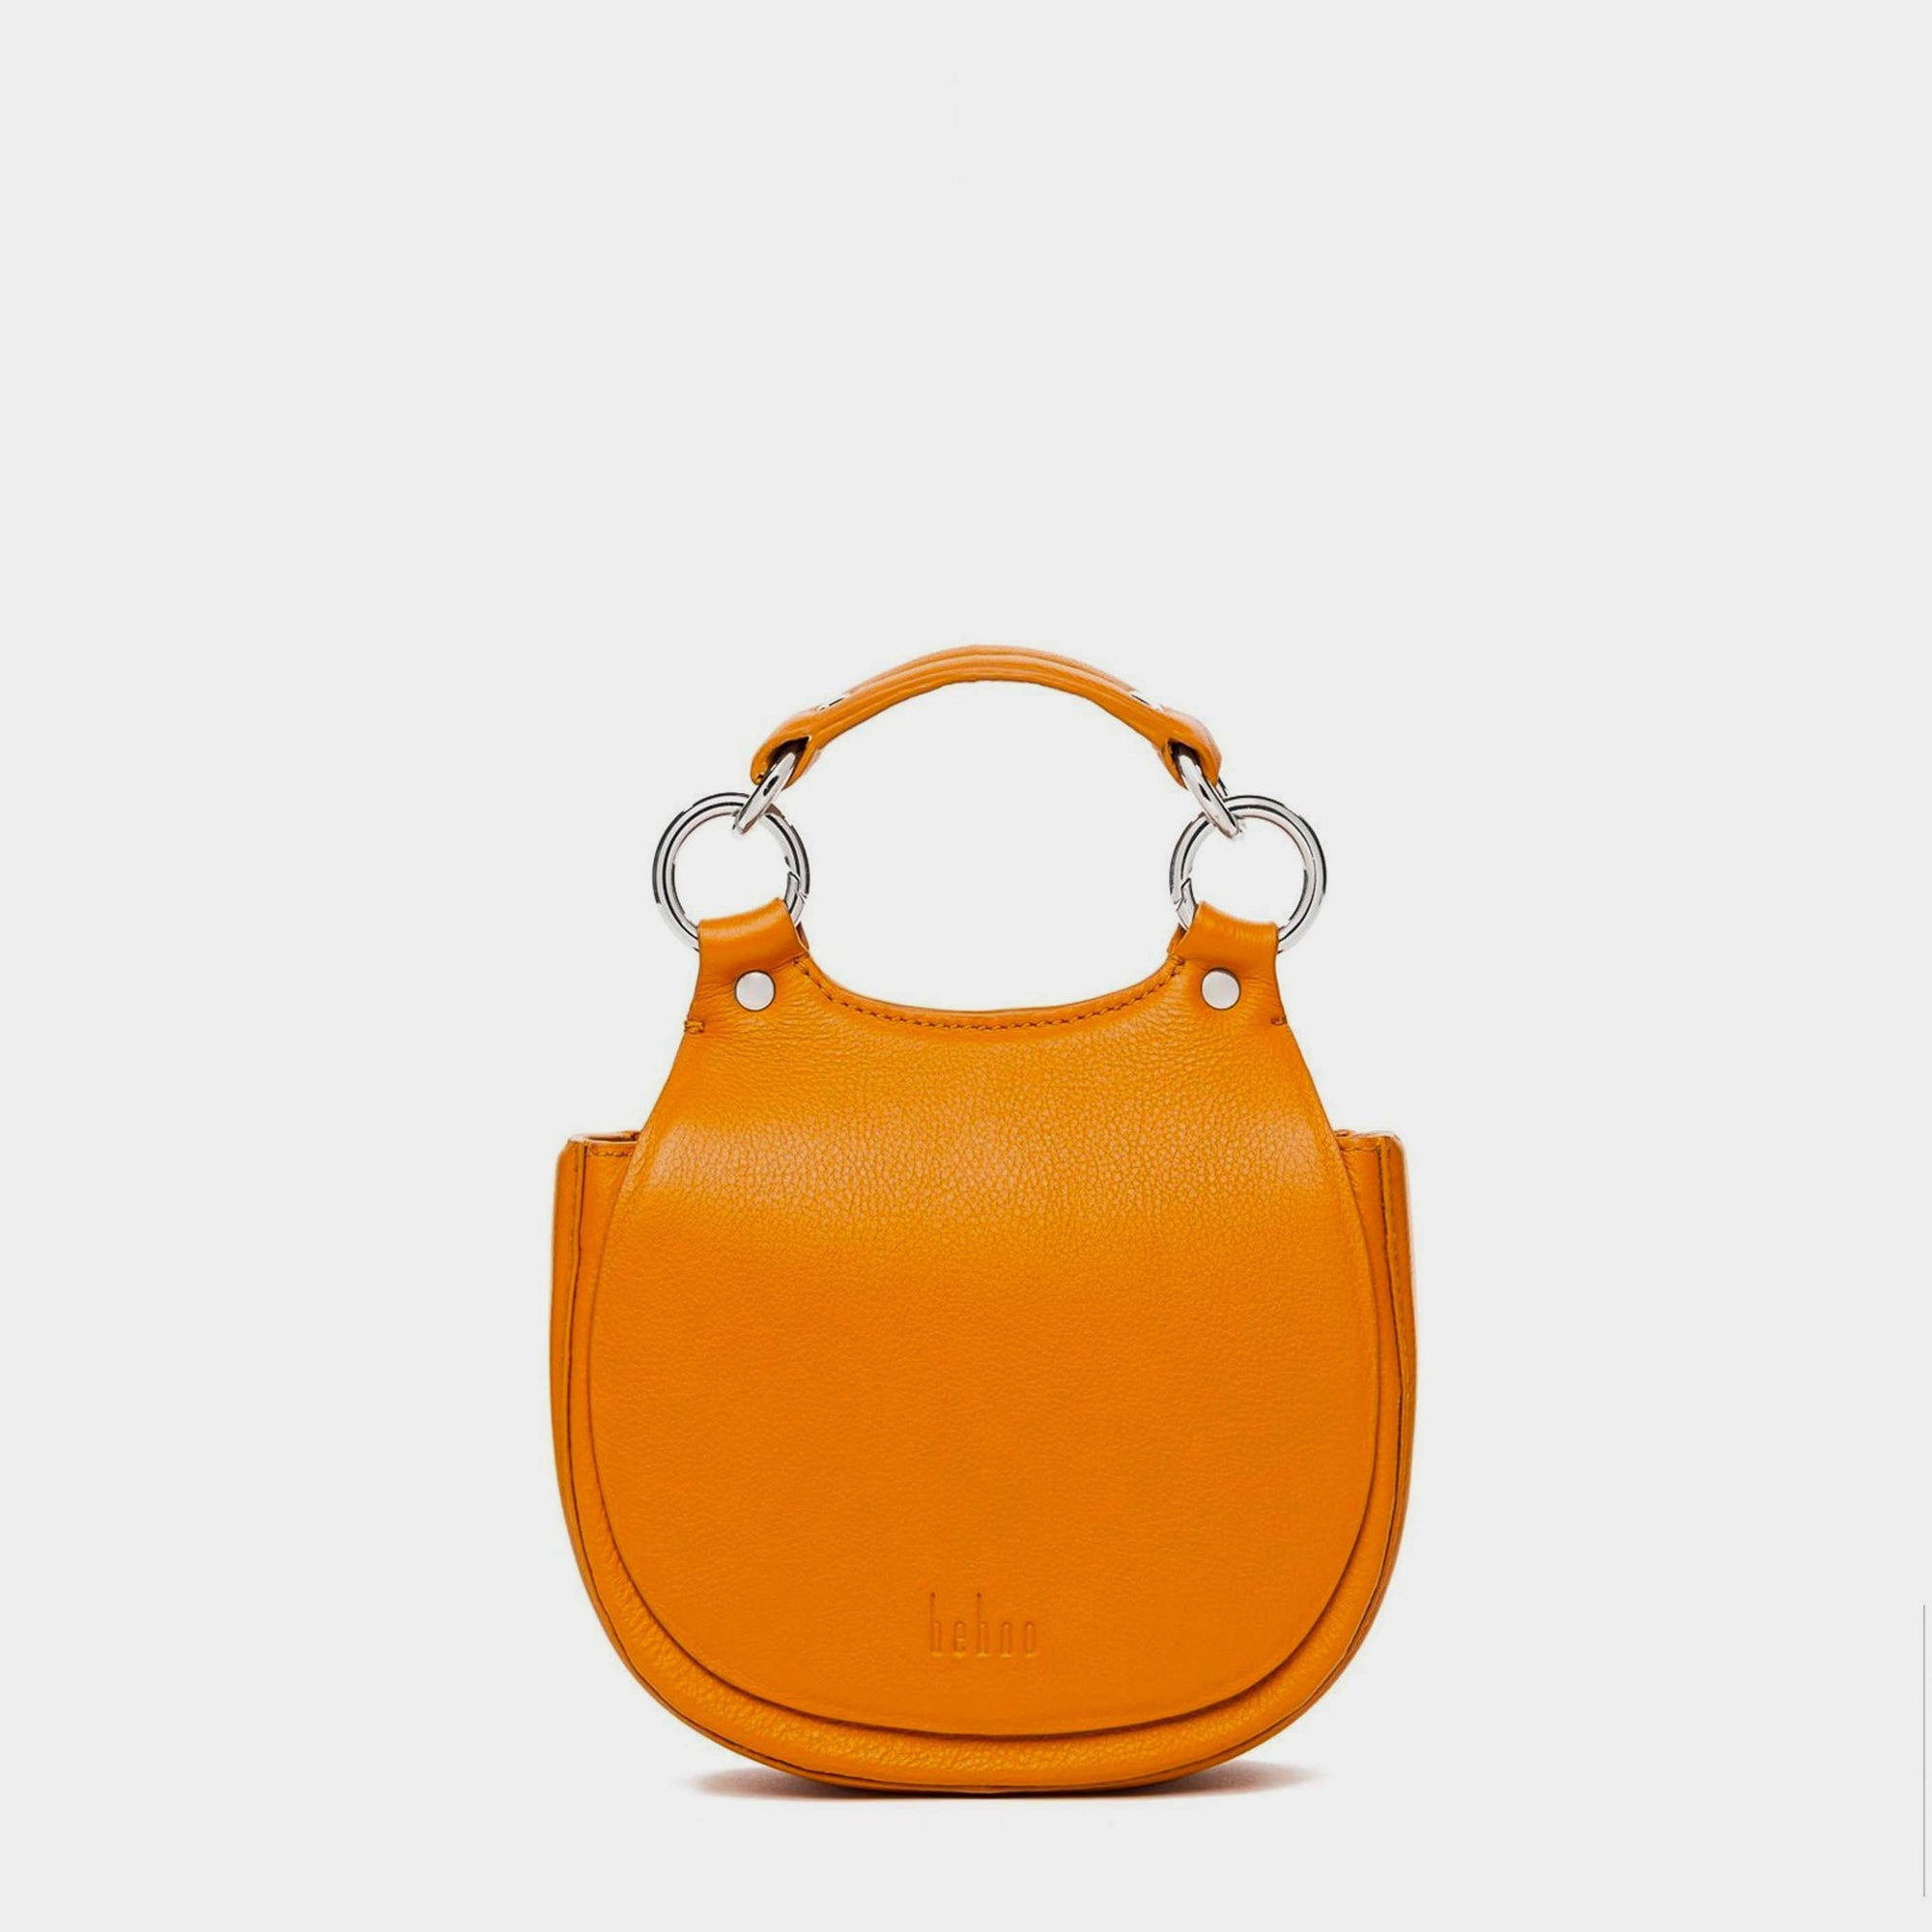 TILDA MINI SADDLE BAG PEBBLE SAFFRON